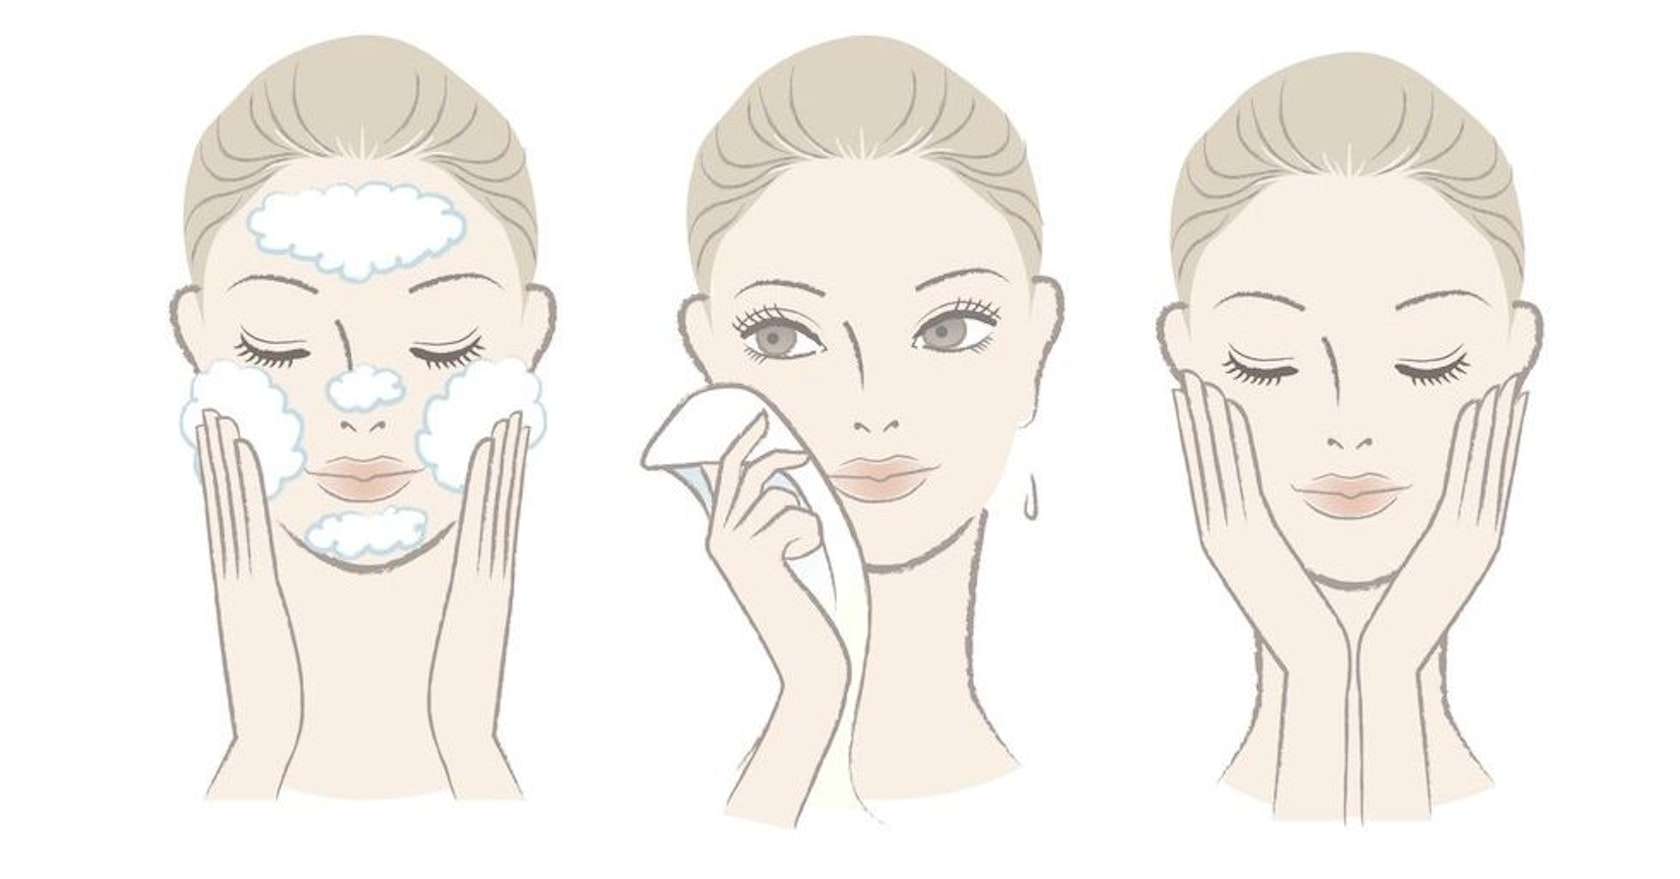 The golden rules of washing your face